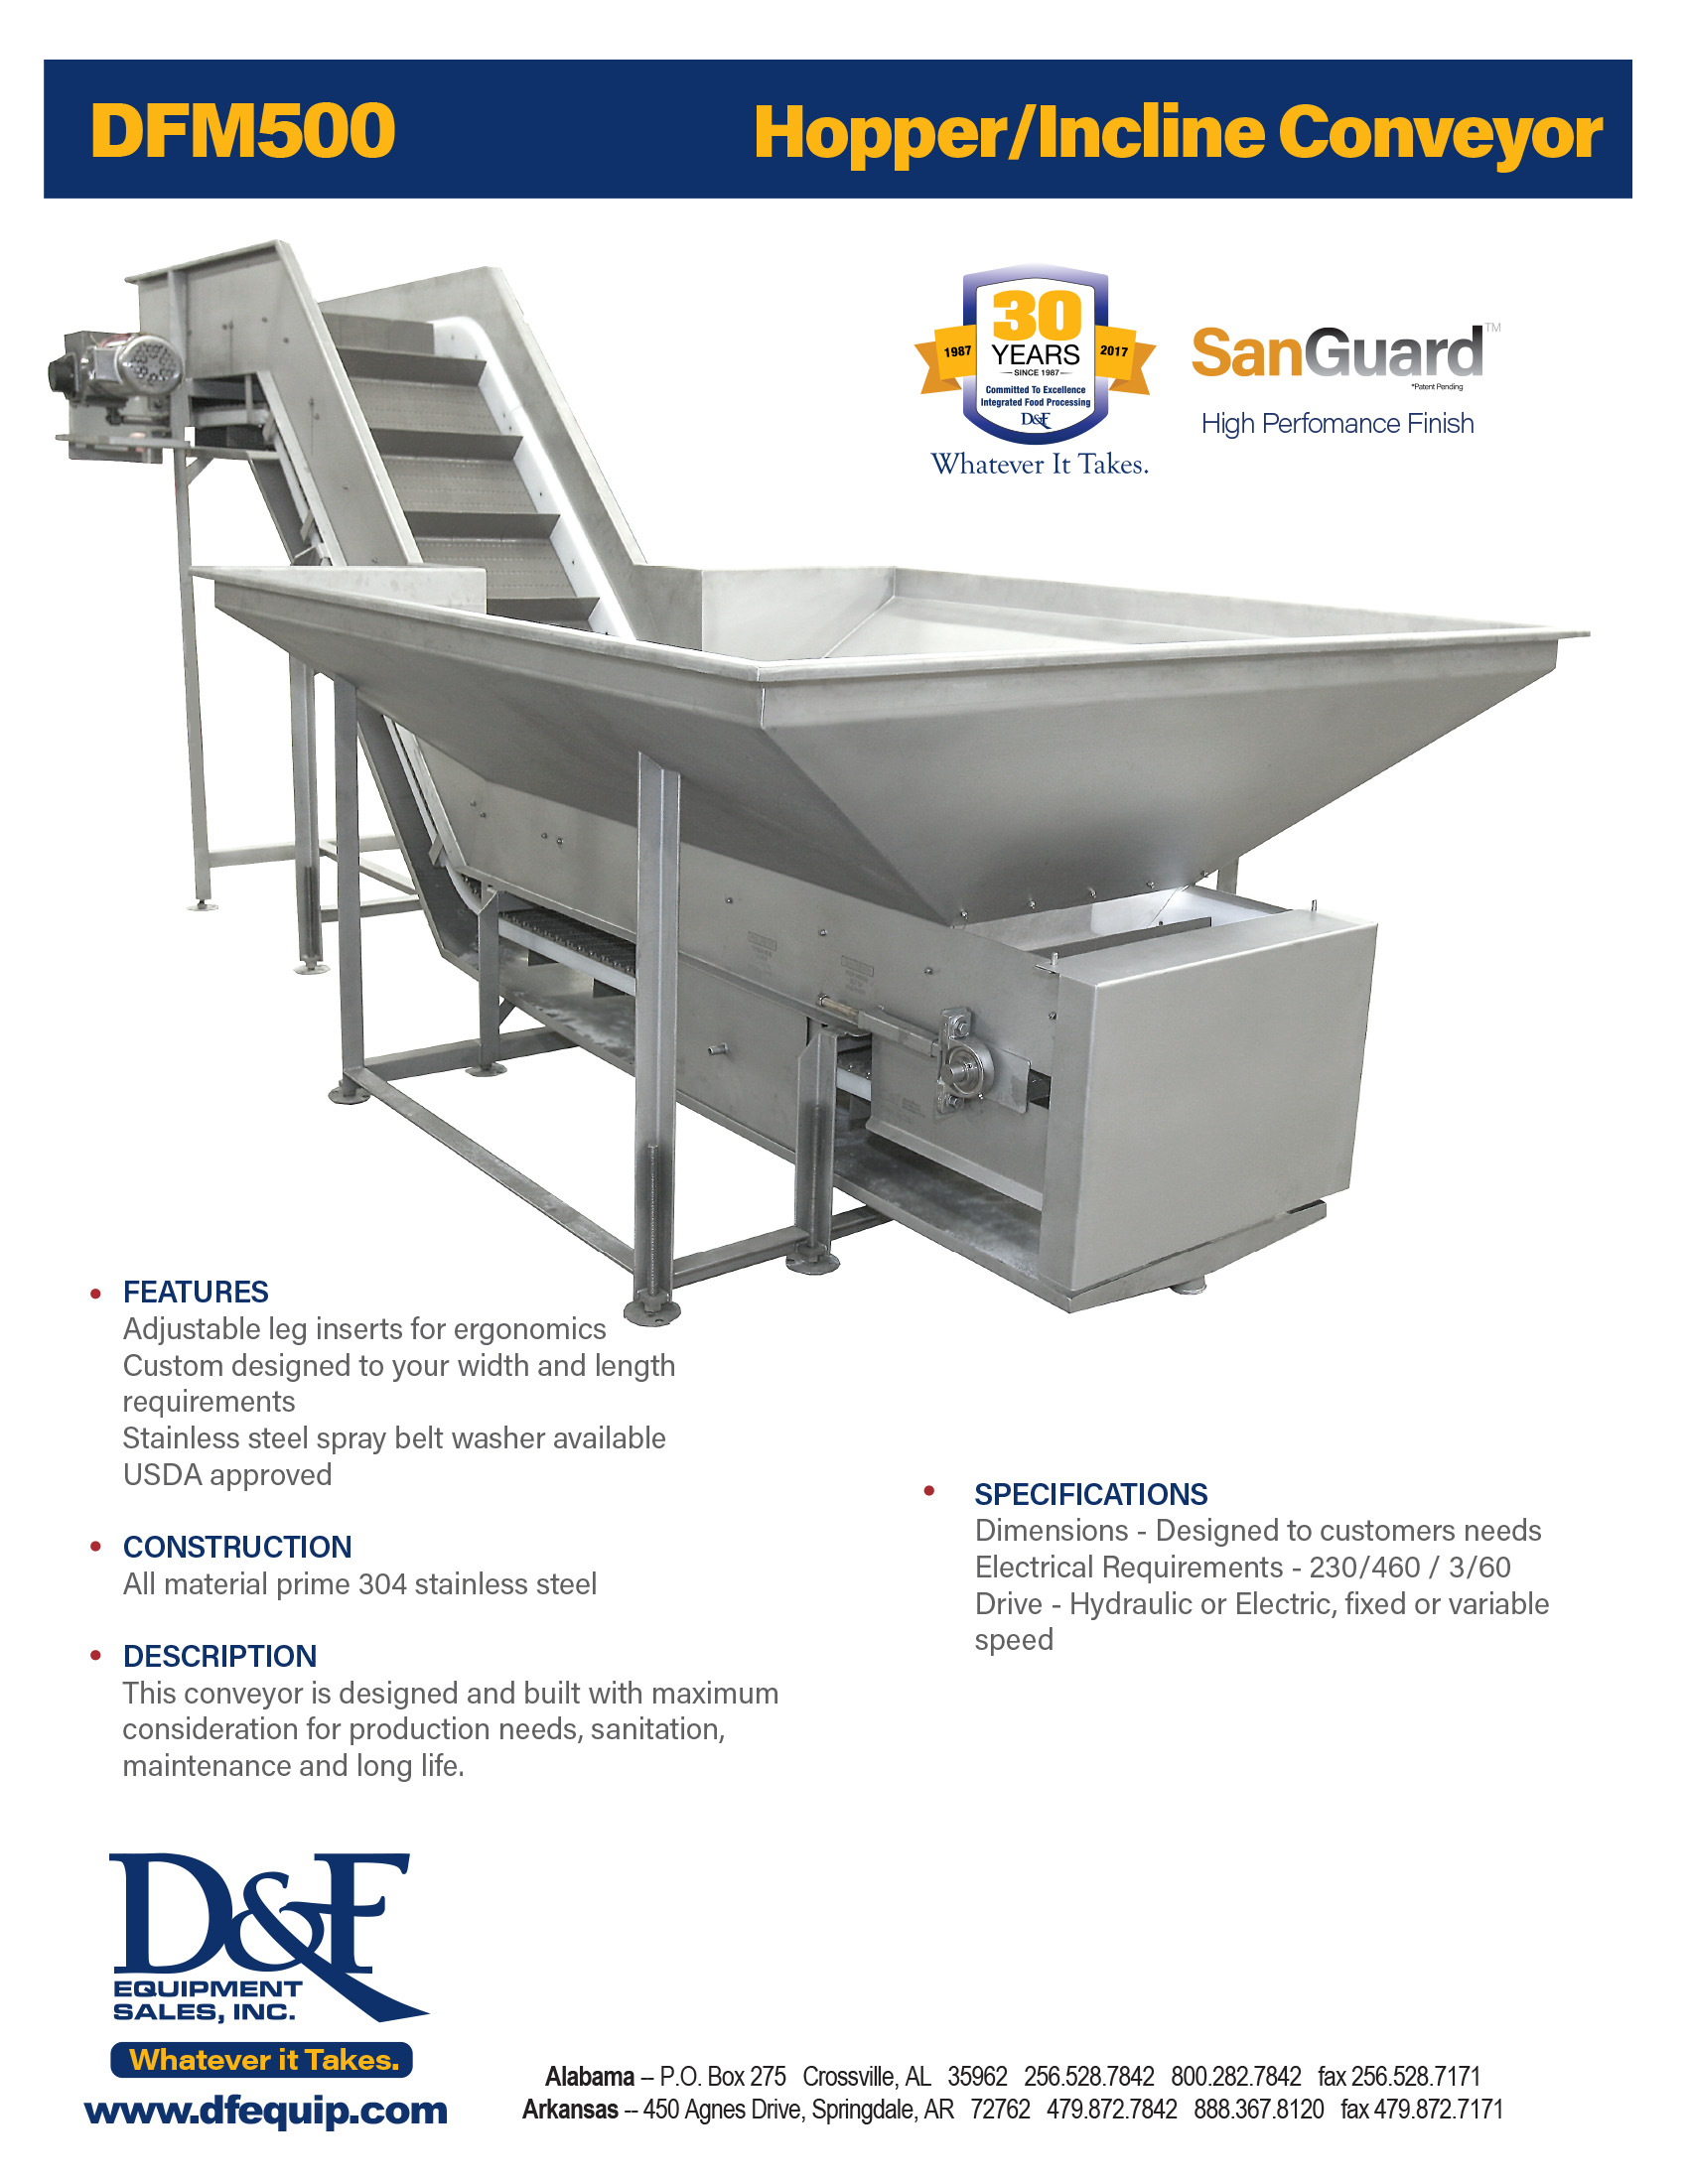 DFM500-HopperInclineConveyor2017.jpg